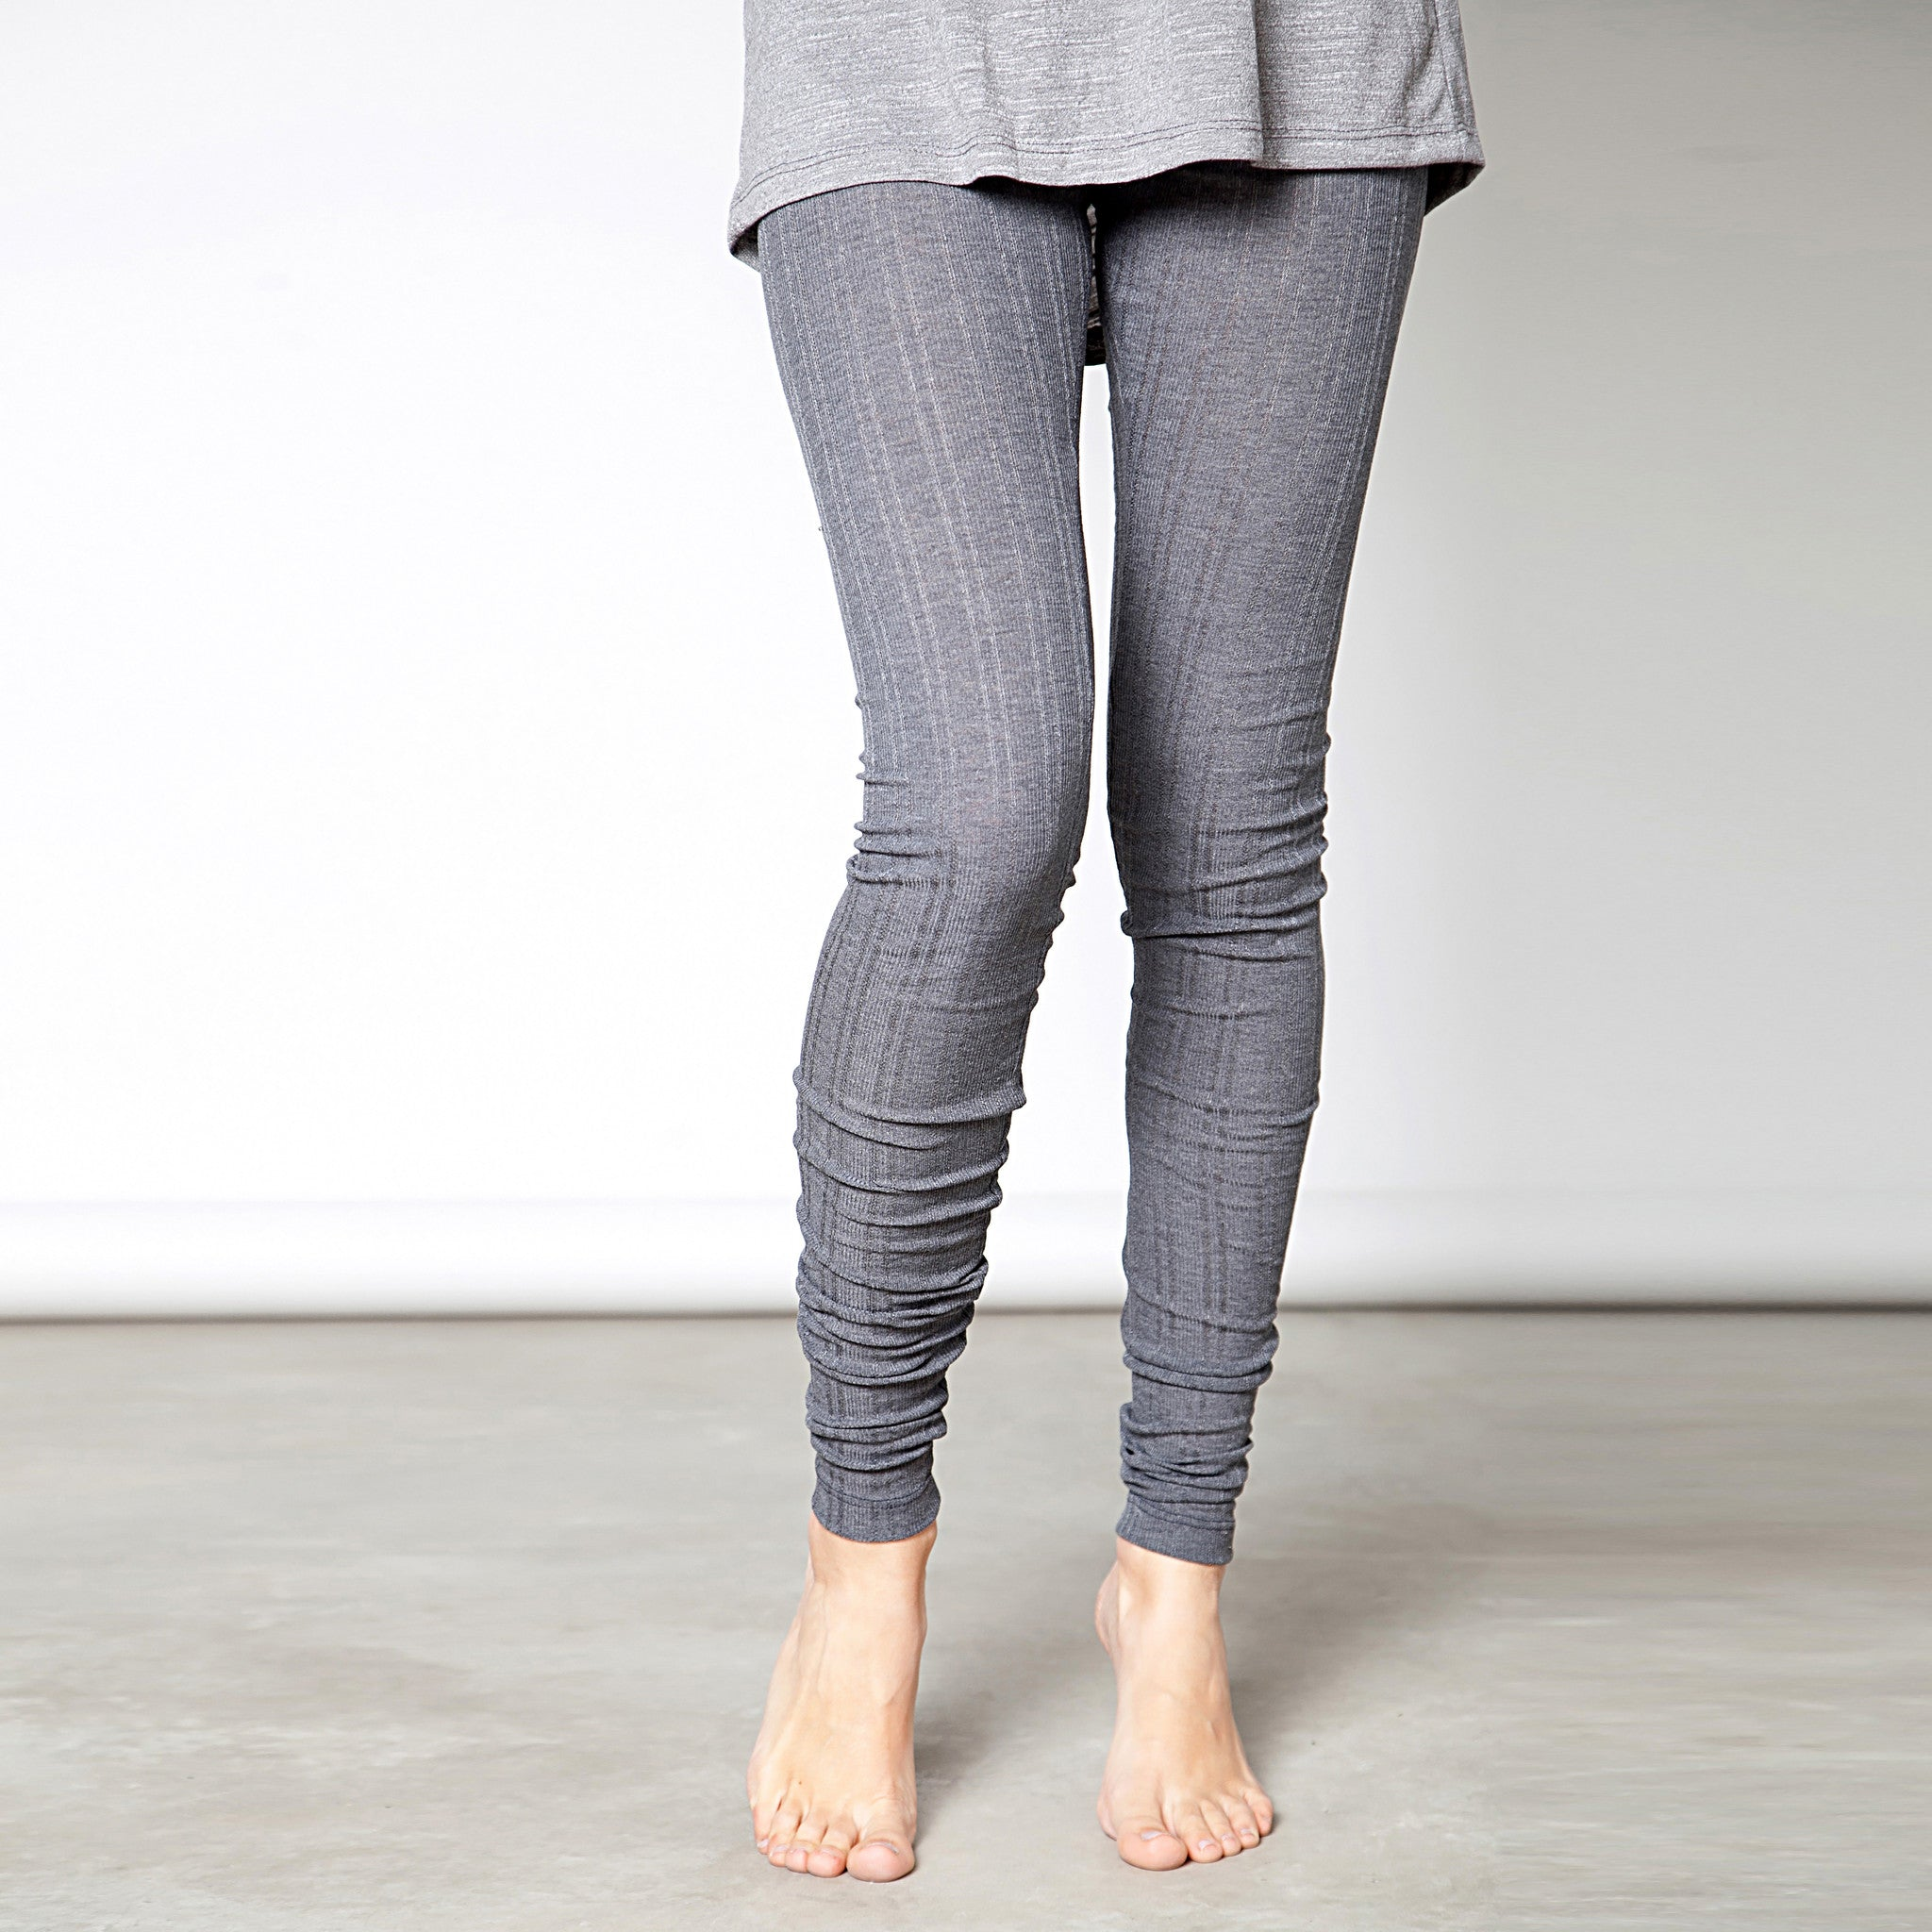 Cotton pointelle knit leggings - DuendeFashion  - 5